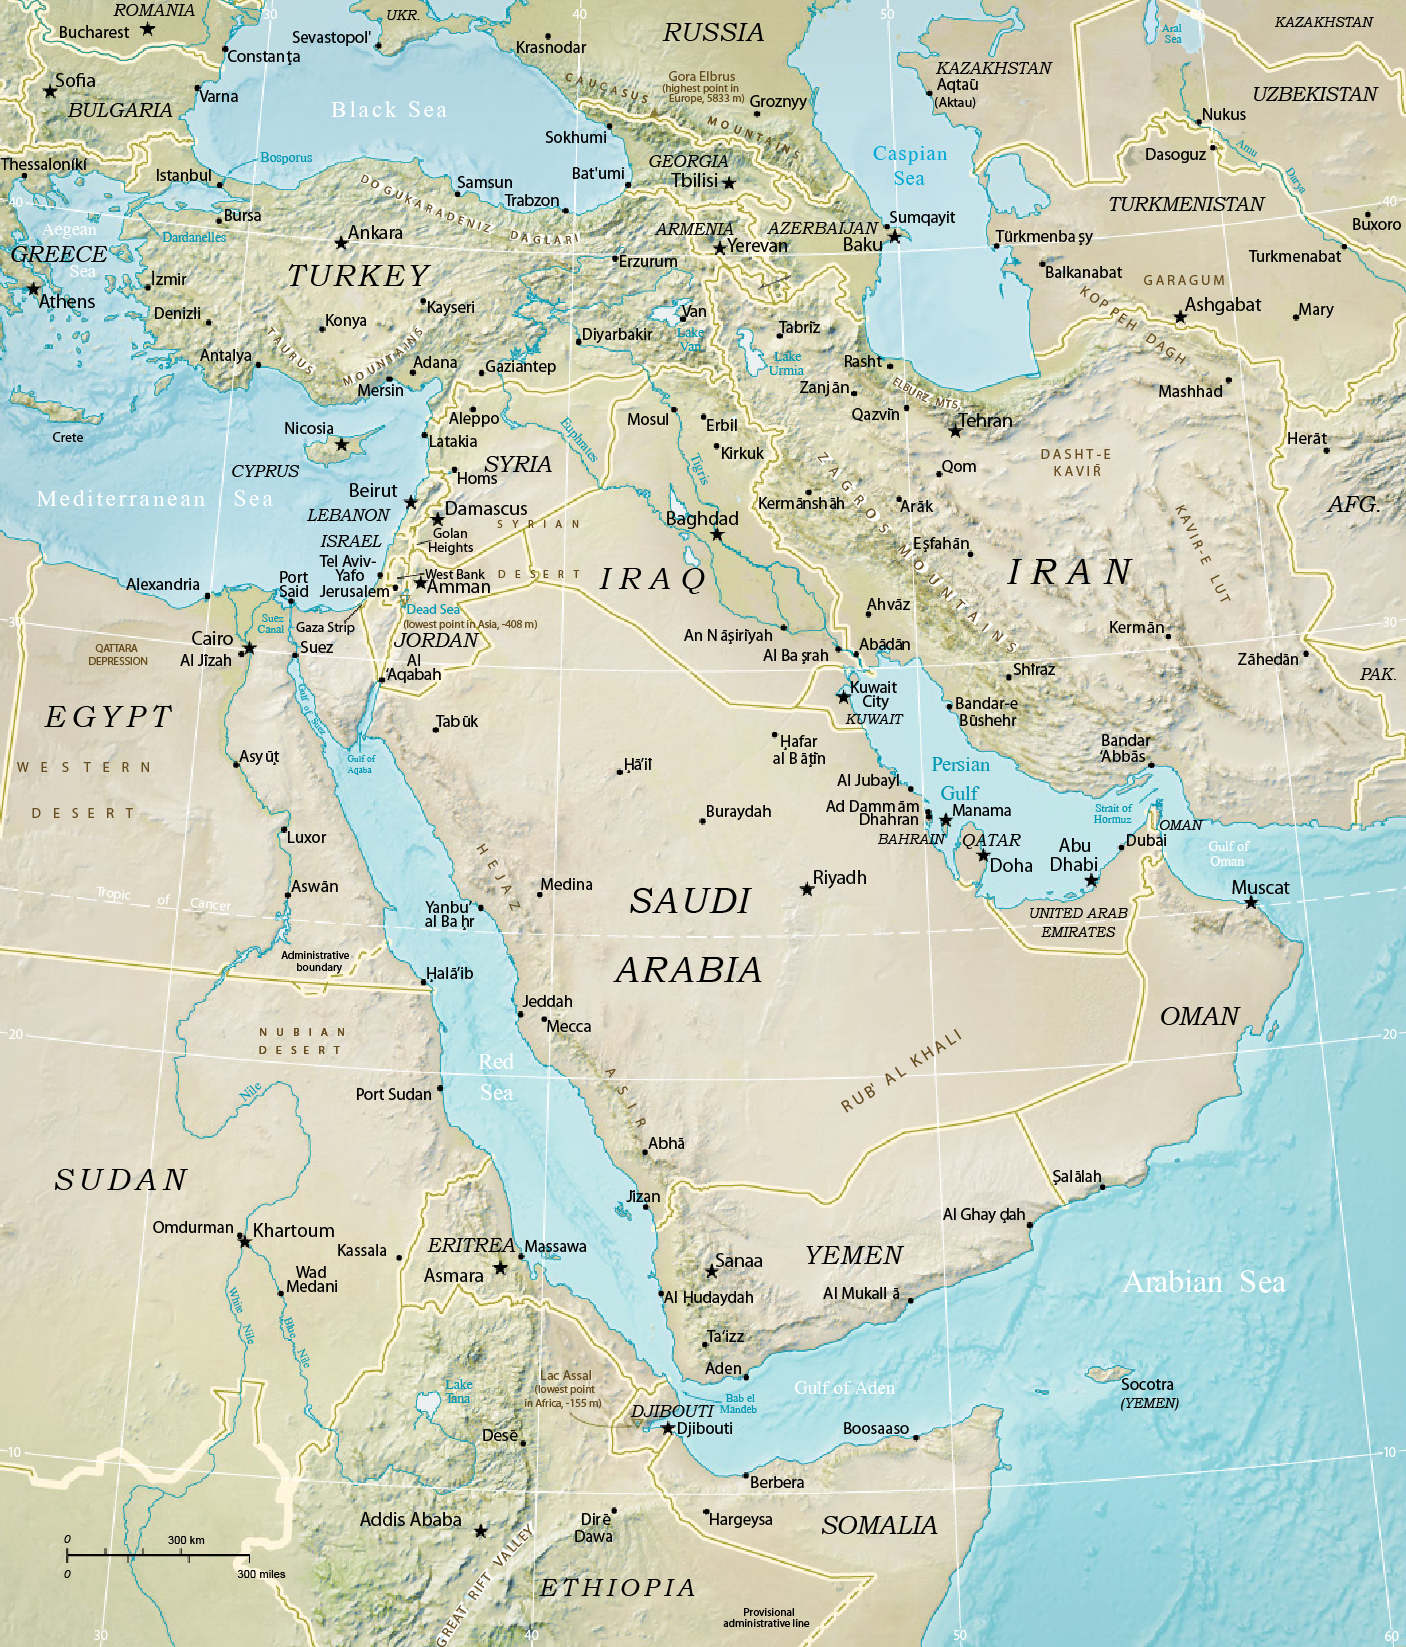 Middle East Map, Turkey, Iran, Iraq